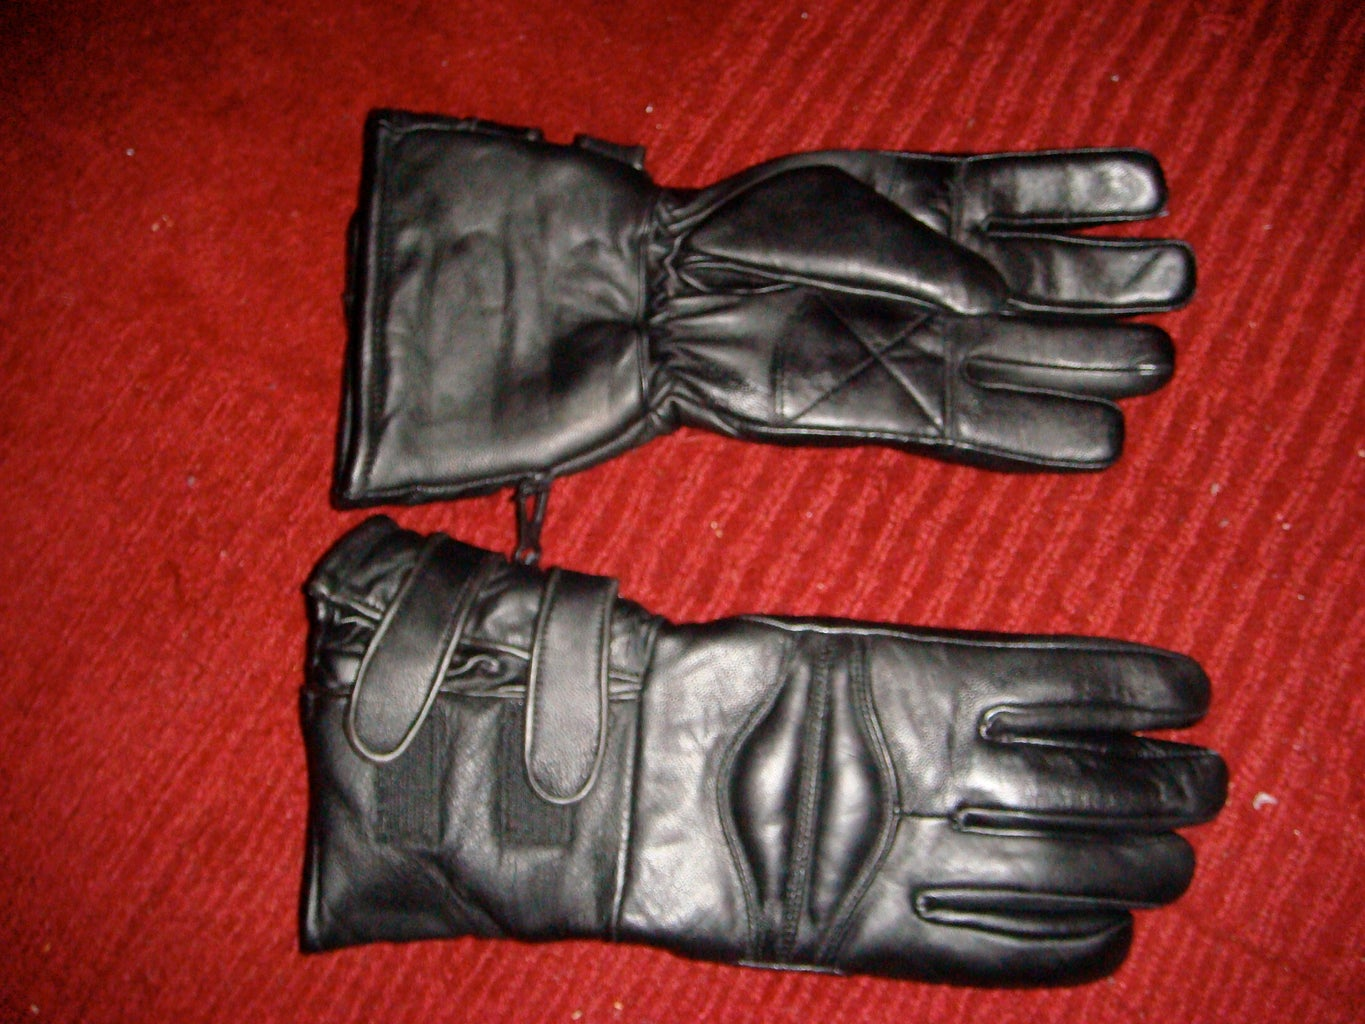 Gloves, Utility Belt, Pants and Boots